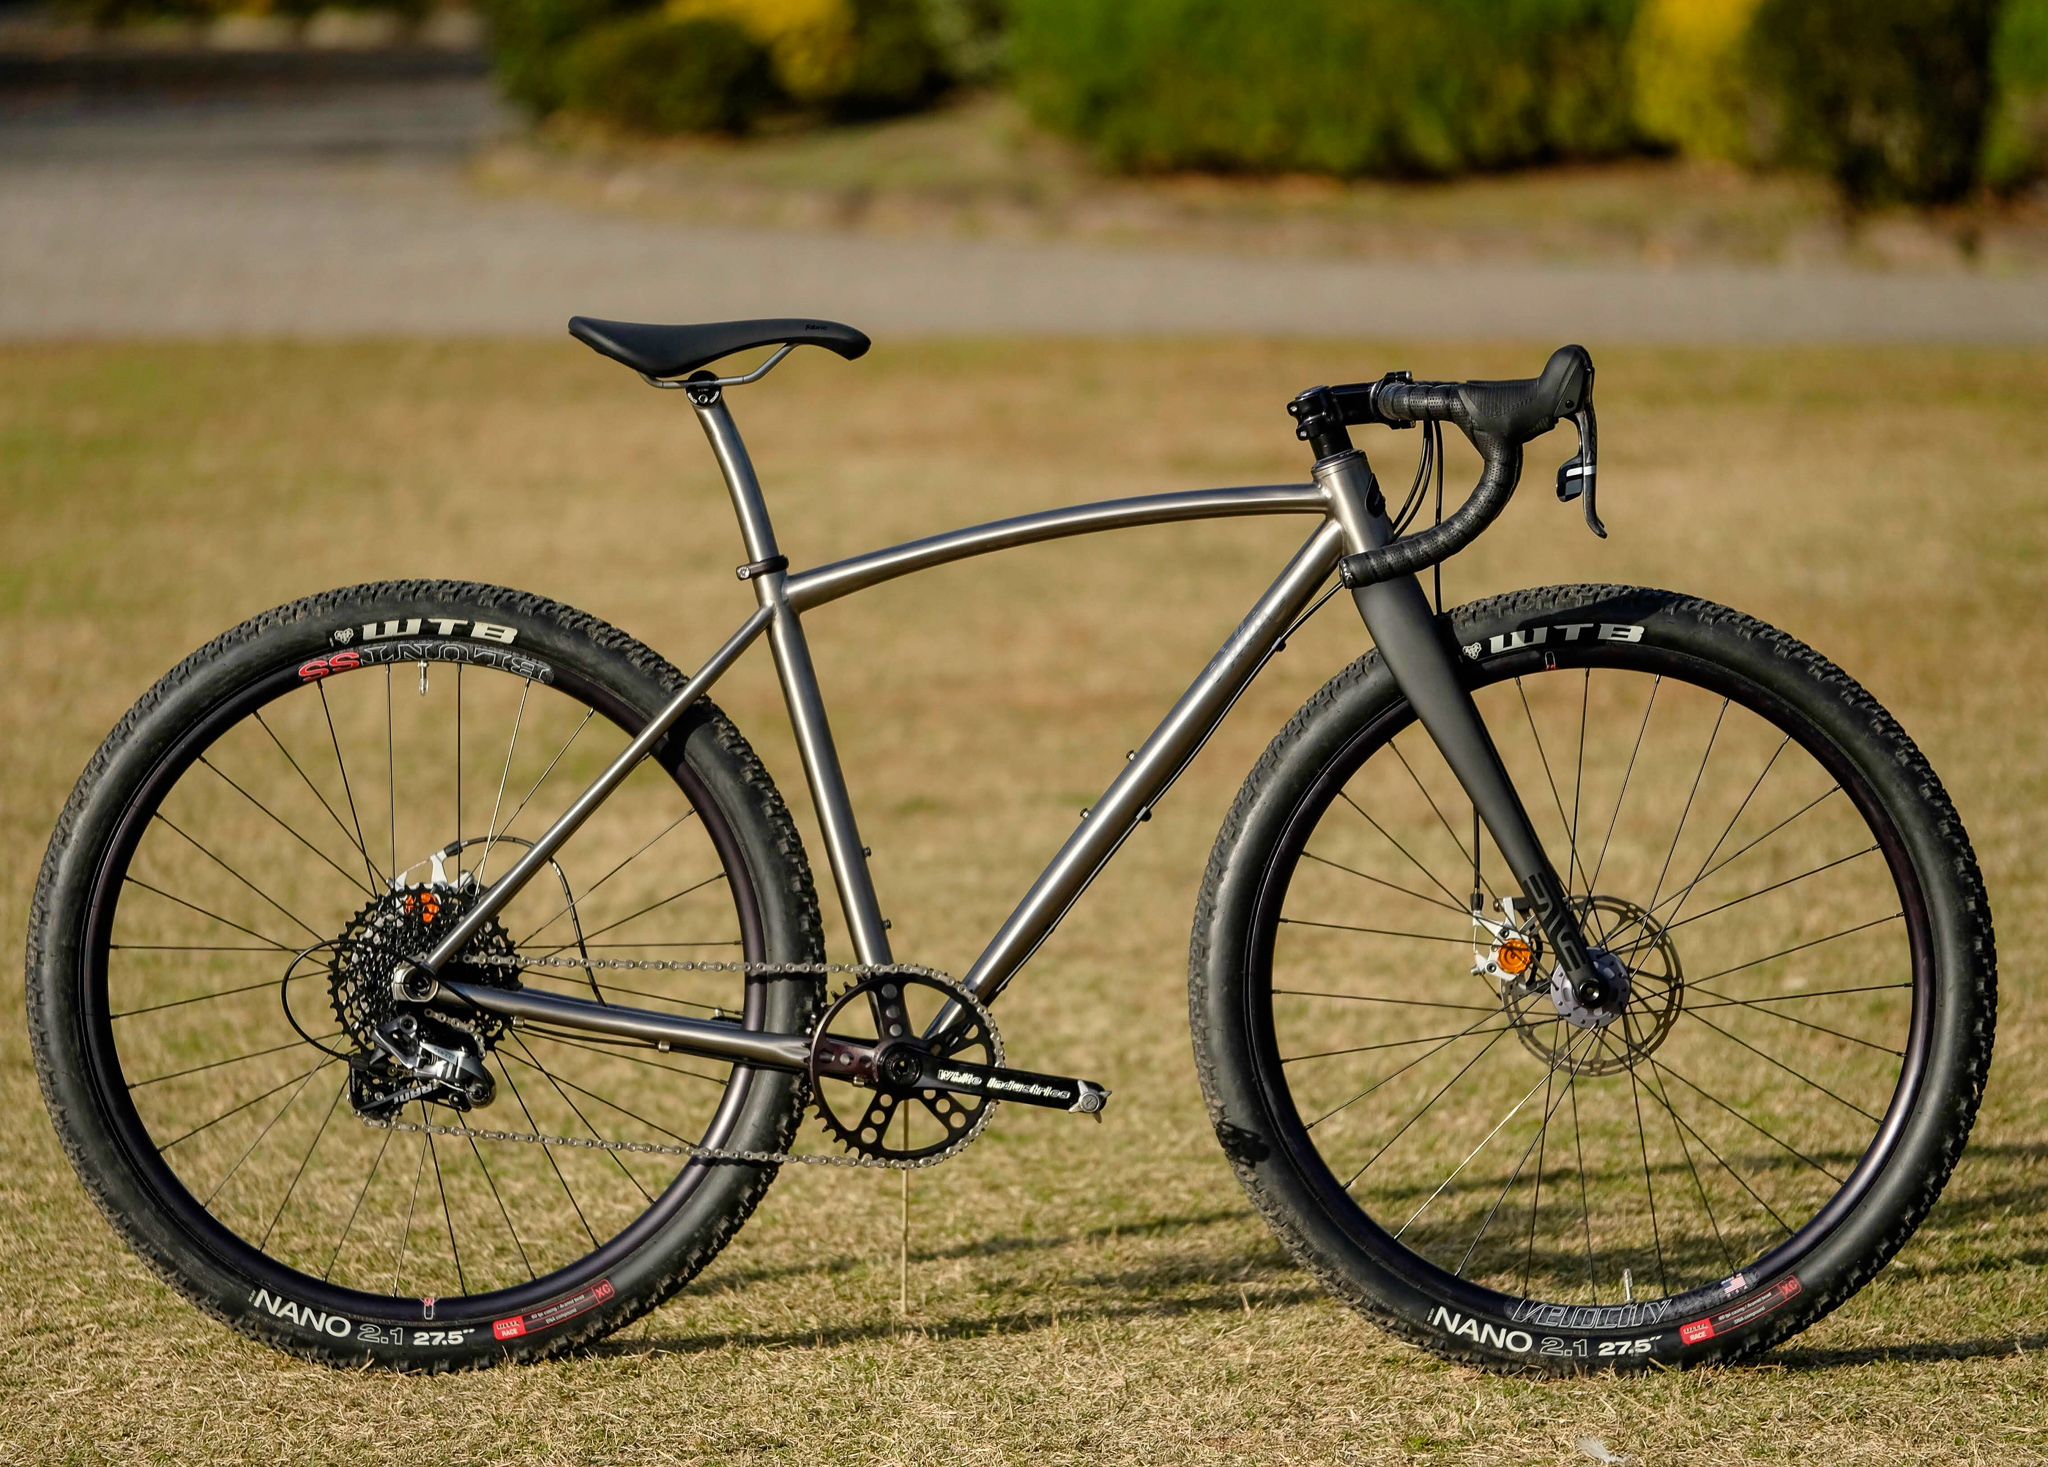 Sklar Titanium monstercross bike